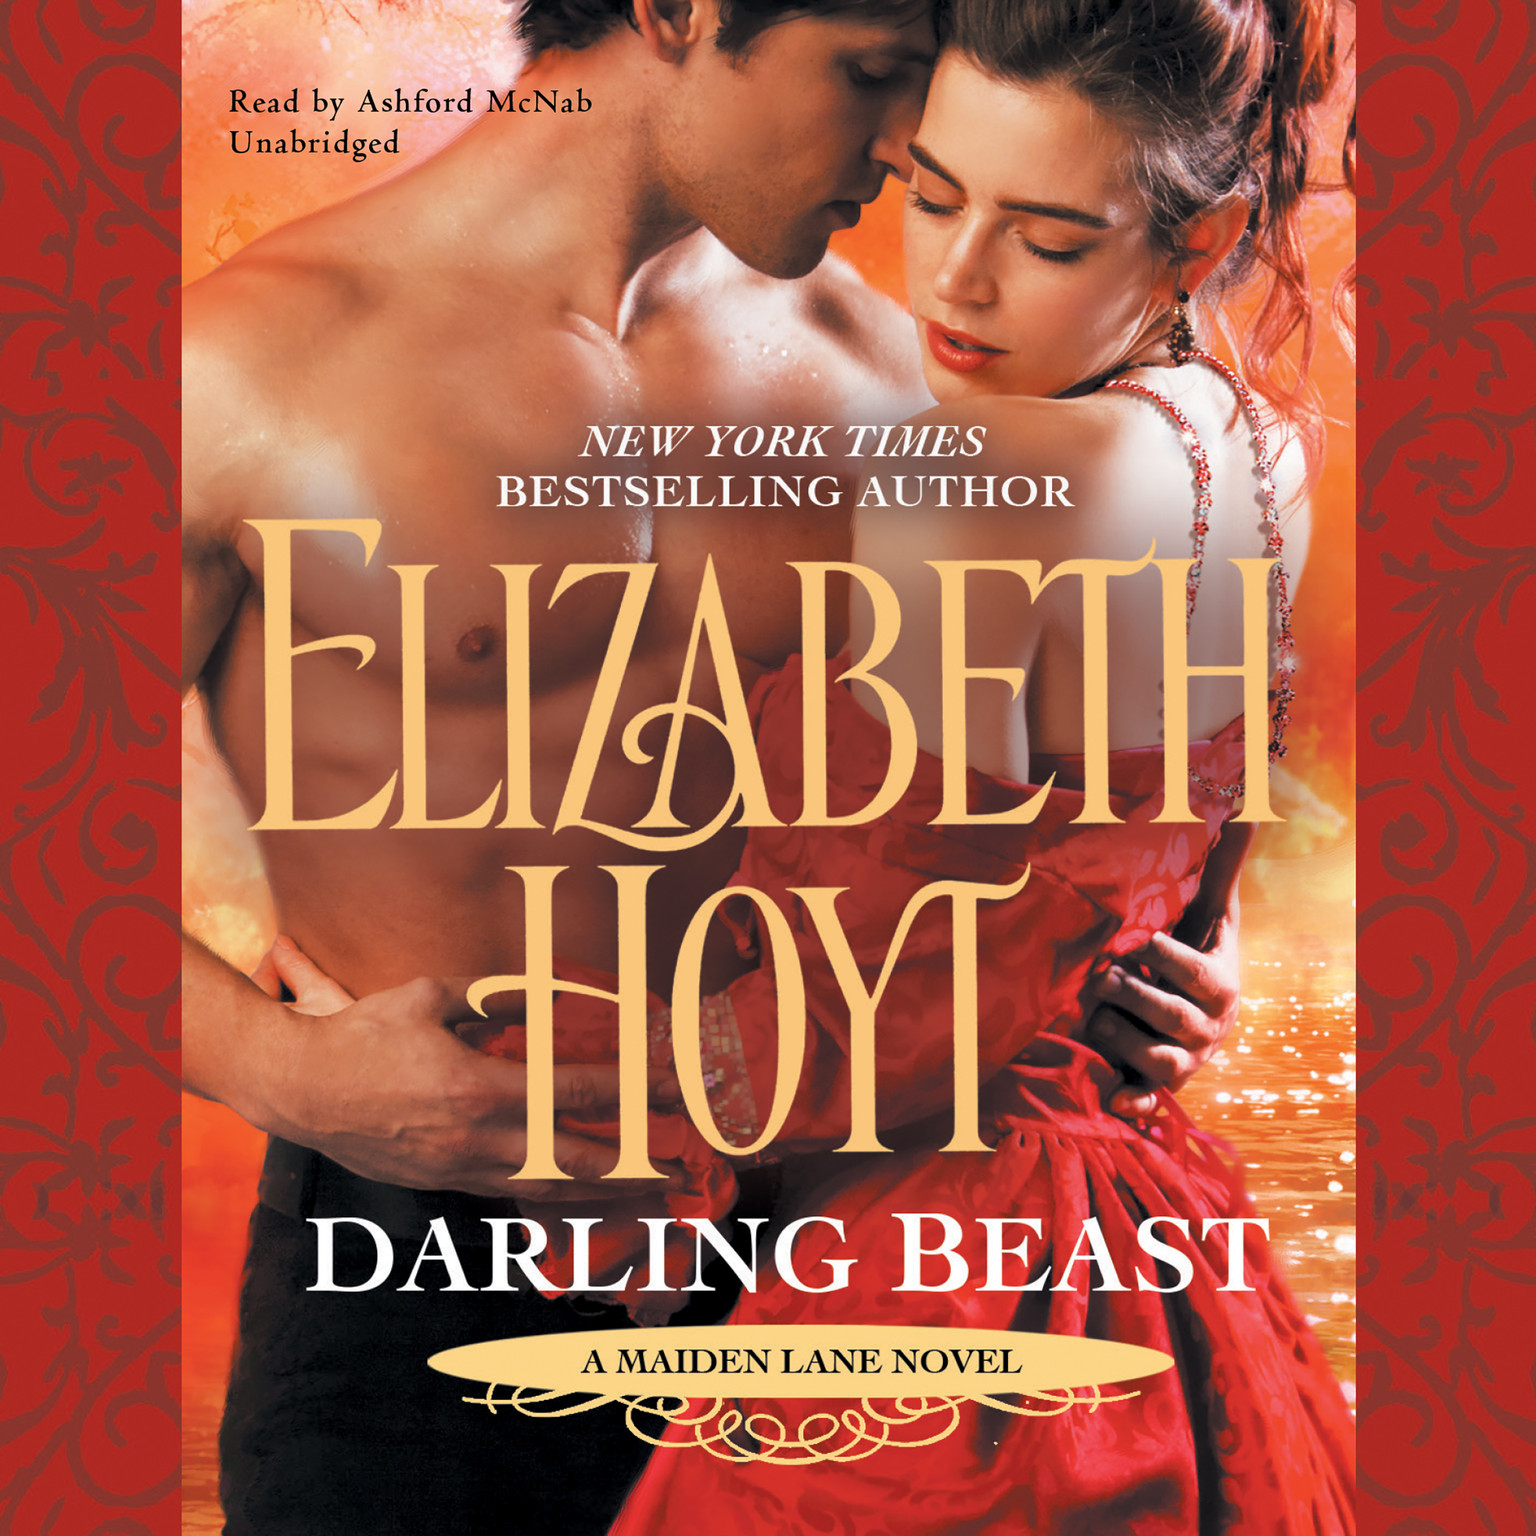 Printable Darling Beast Audiobook Cover Art